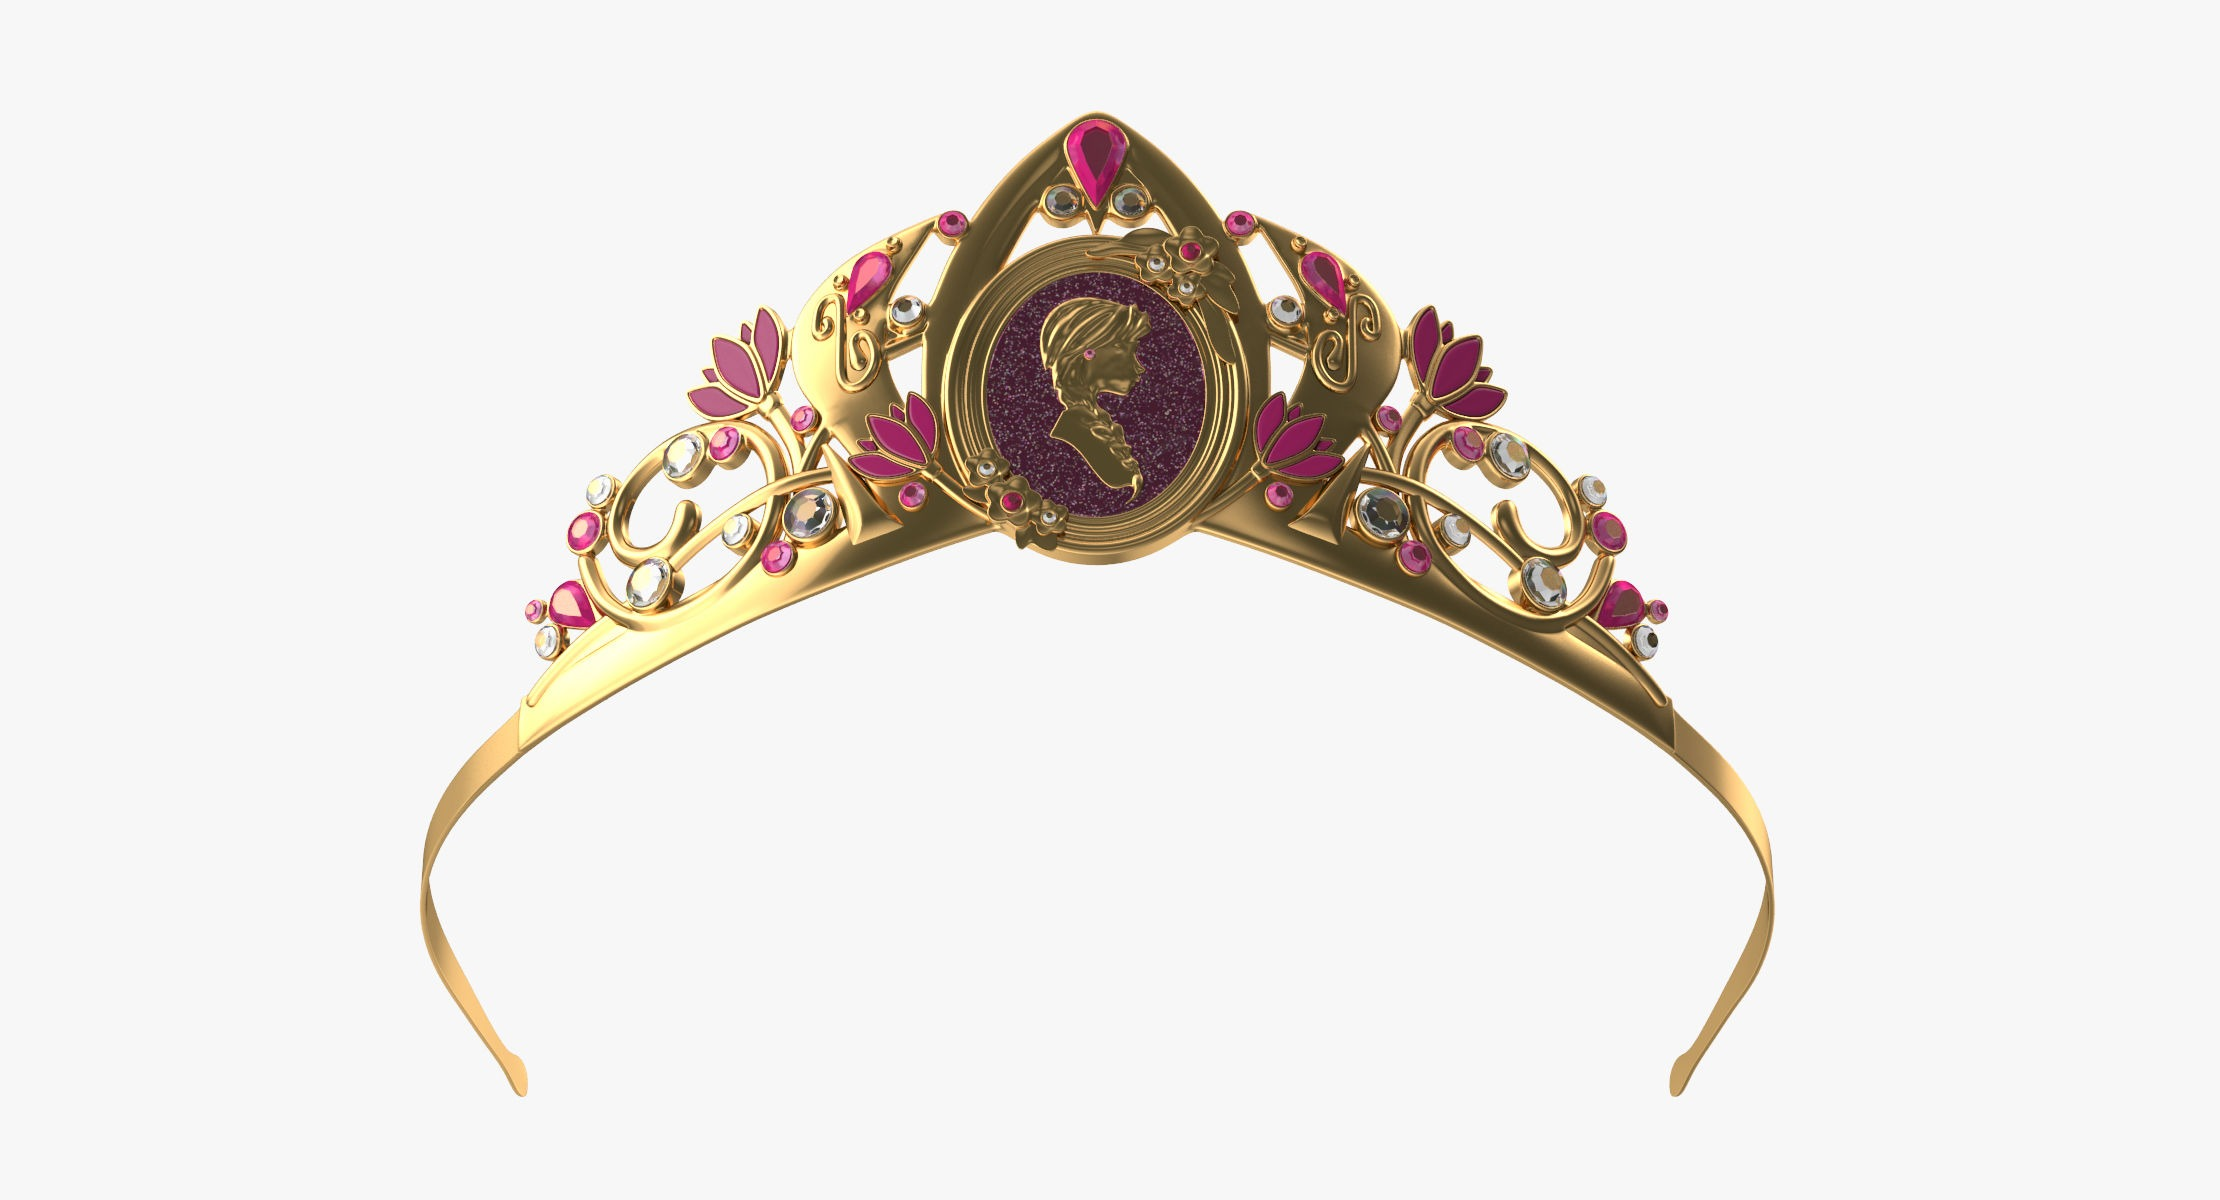 Anna Inspired Tiara - reel 1